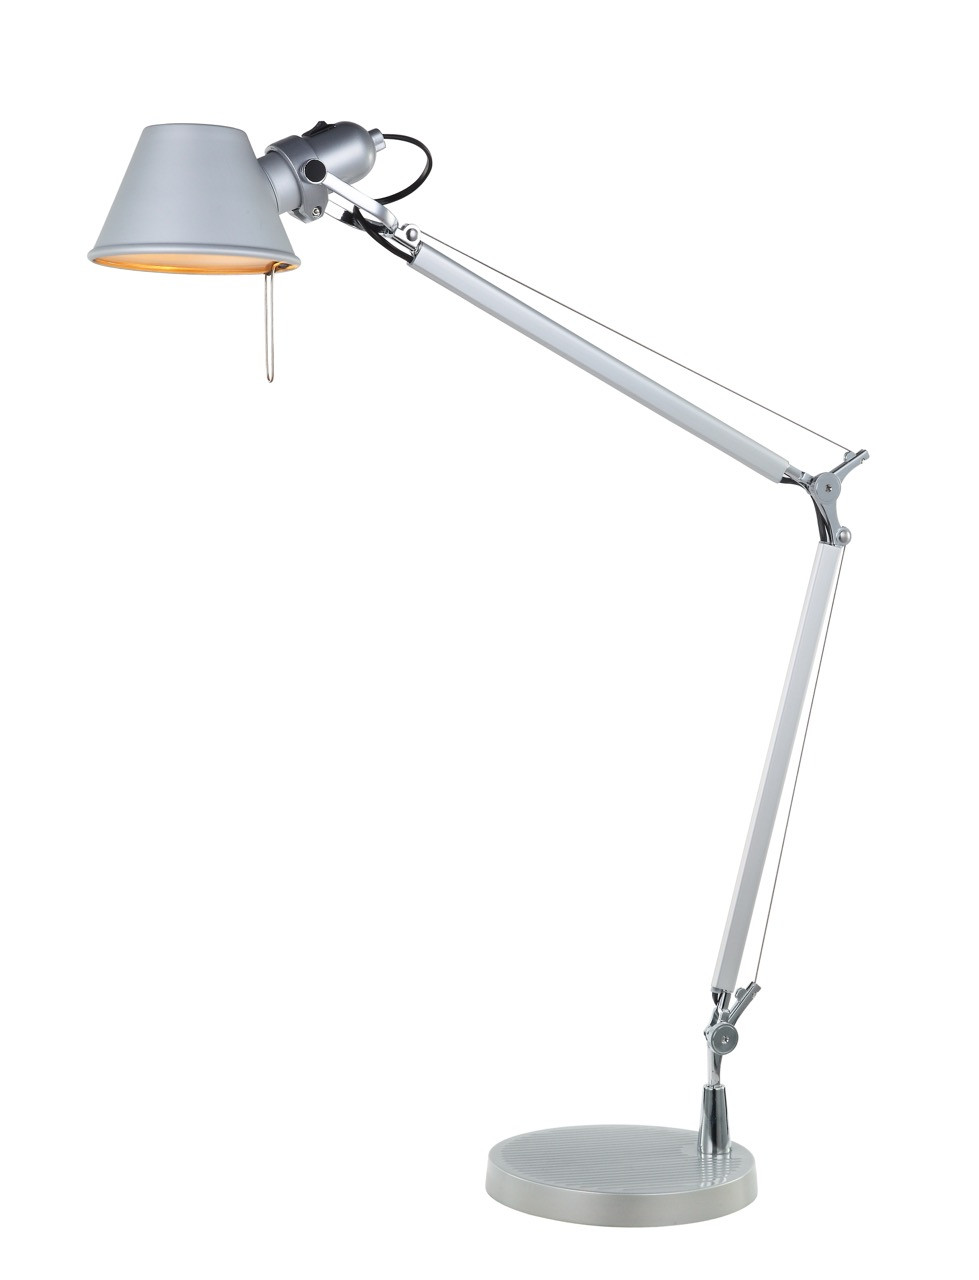 Lampara De Escritorio Led Contemporáneo Prar Lámpara De Mesa Tipo Metalarte Con Articulaciones Of Lampara De Escritorio Led Único 25 Best Ideas About Lamparas De Escritorio Led En